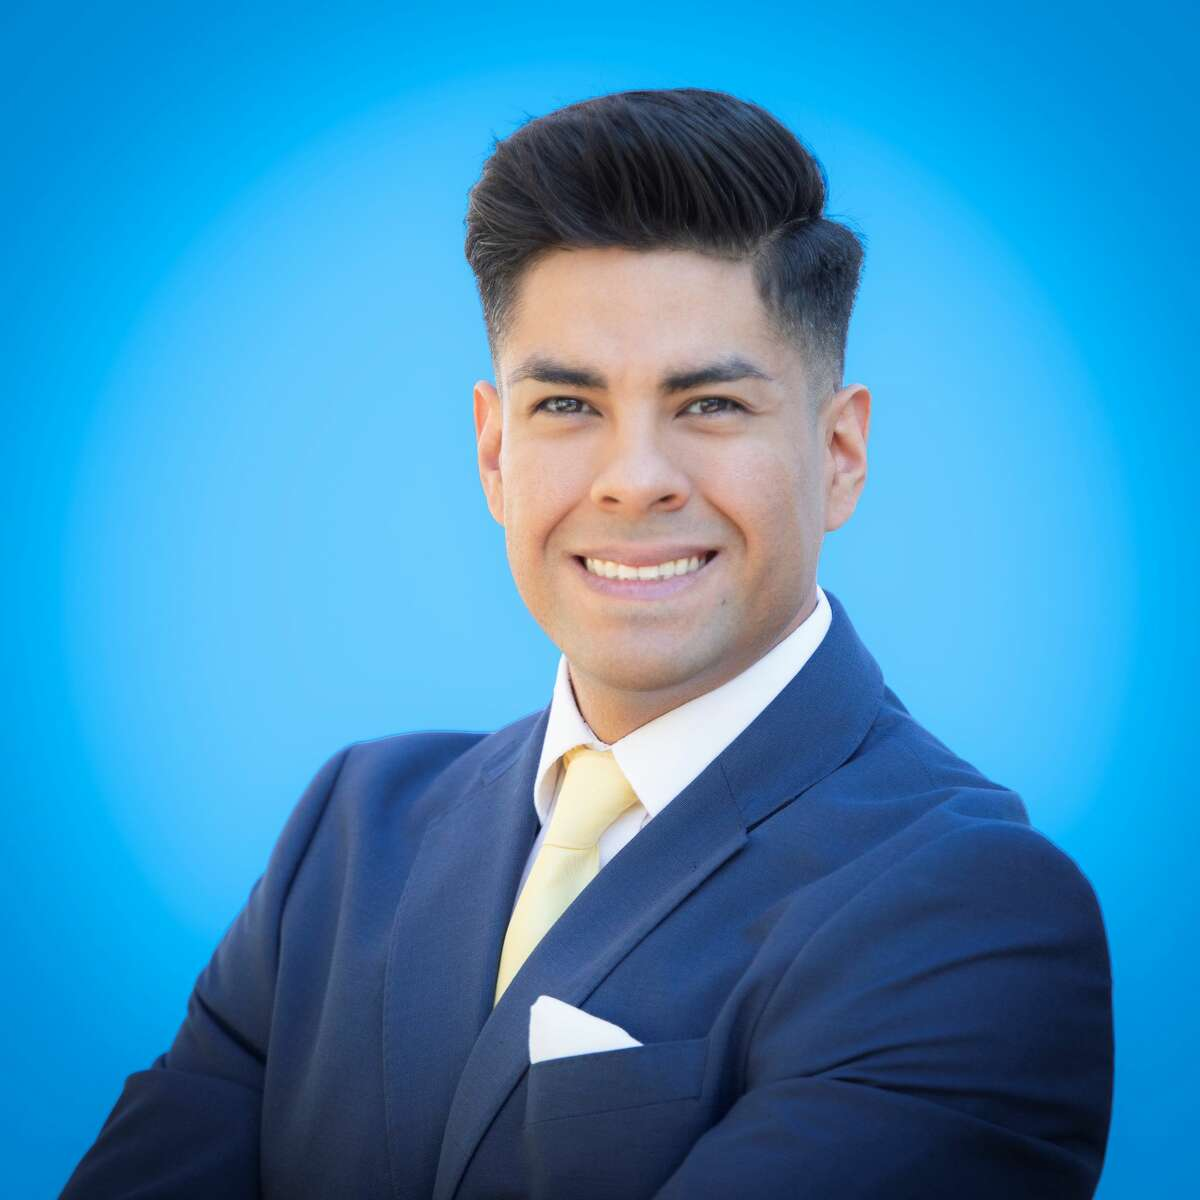 George De La Torre, 36, hopes to educate home buyers about the history of San Antonio's neighborhoods through his social media videos.